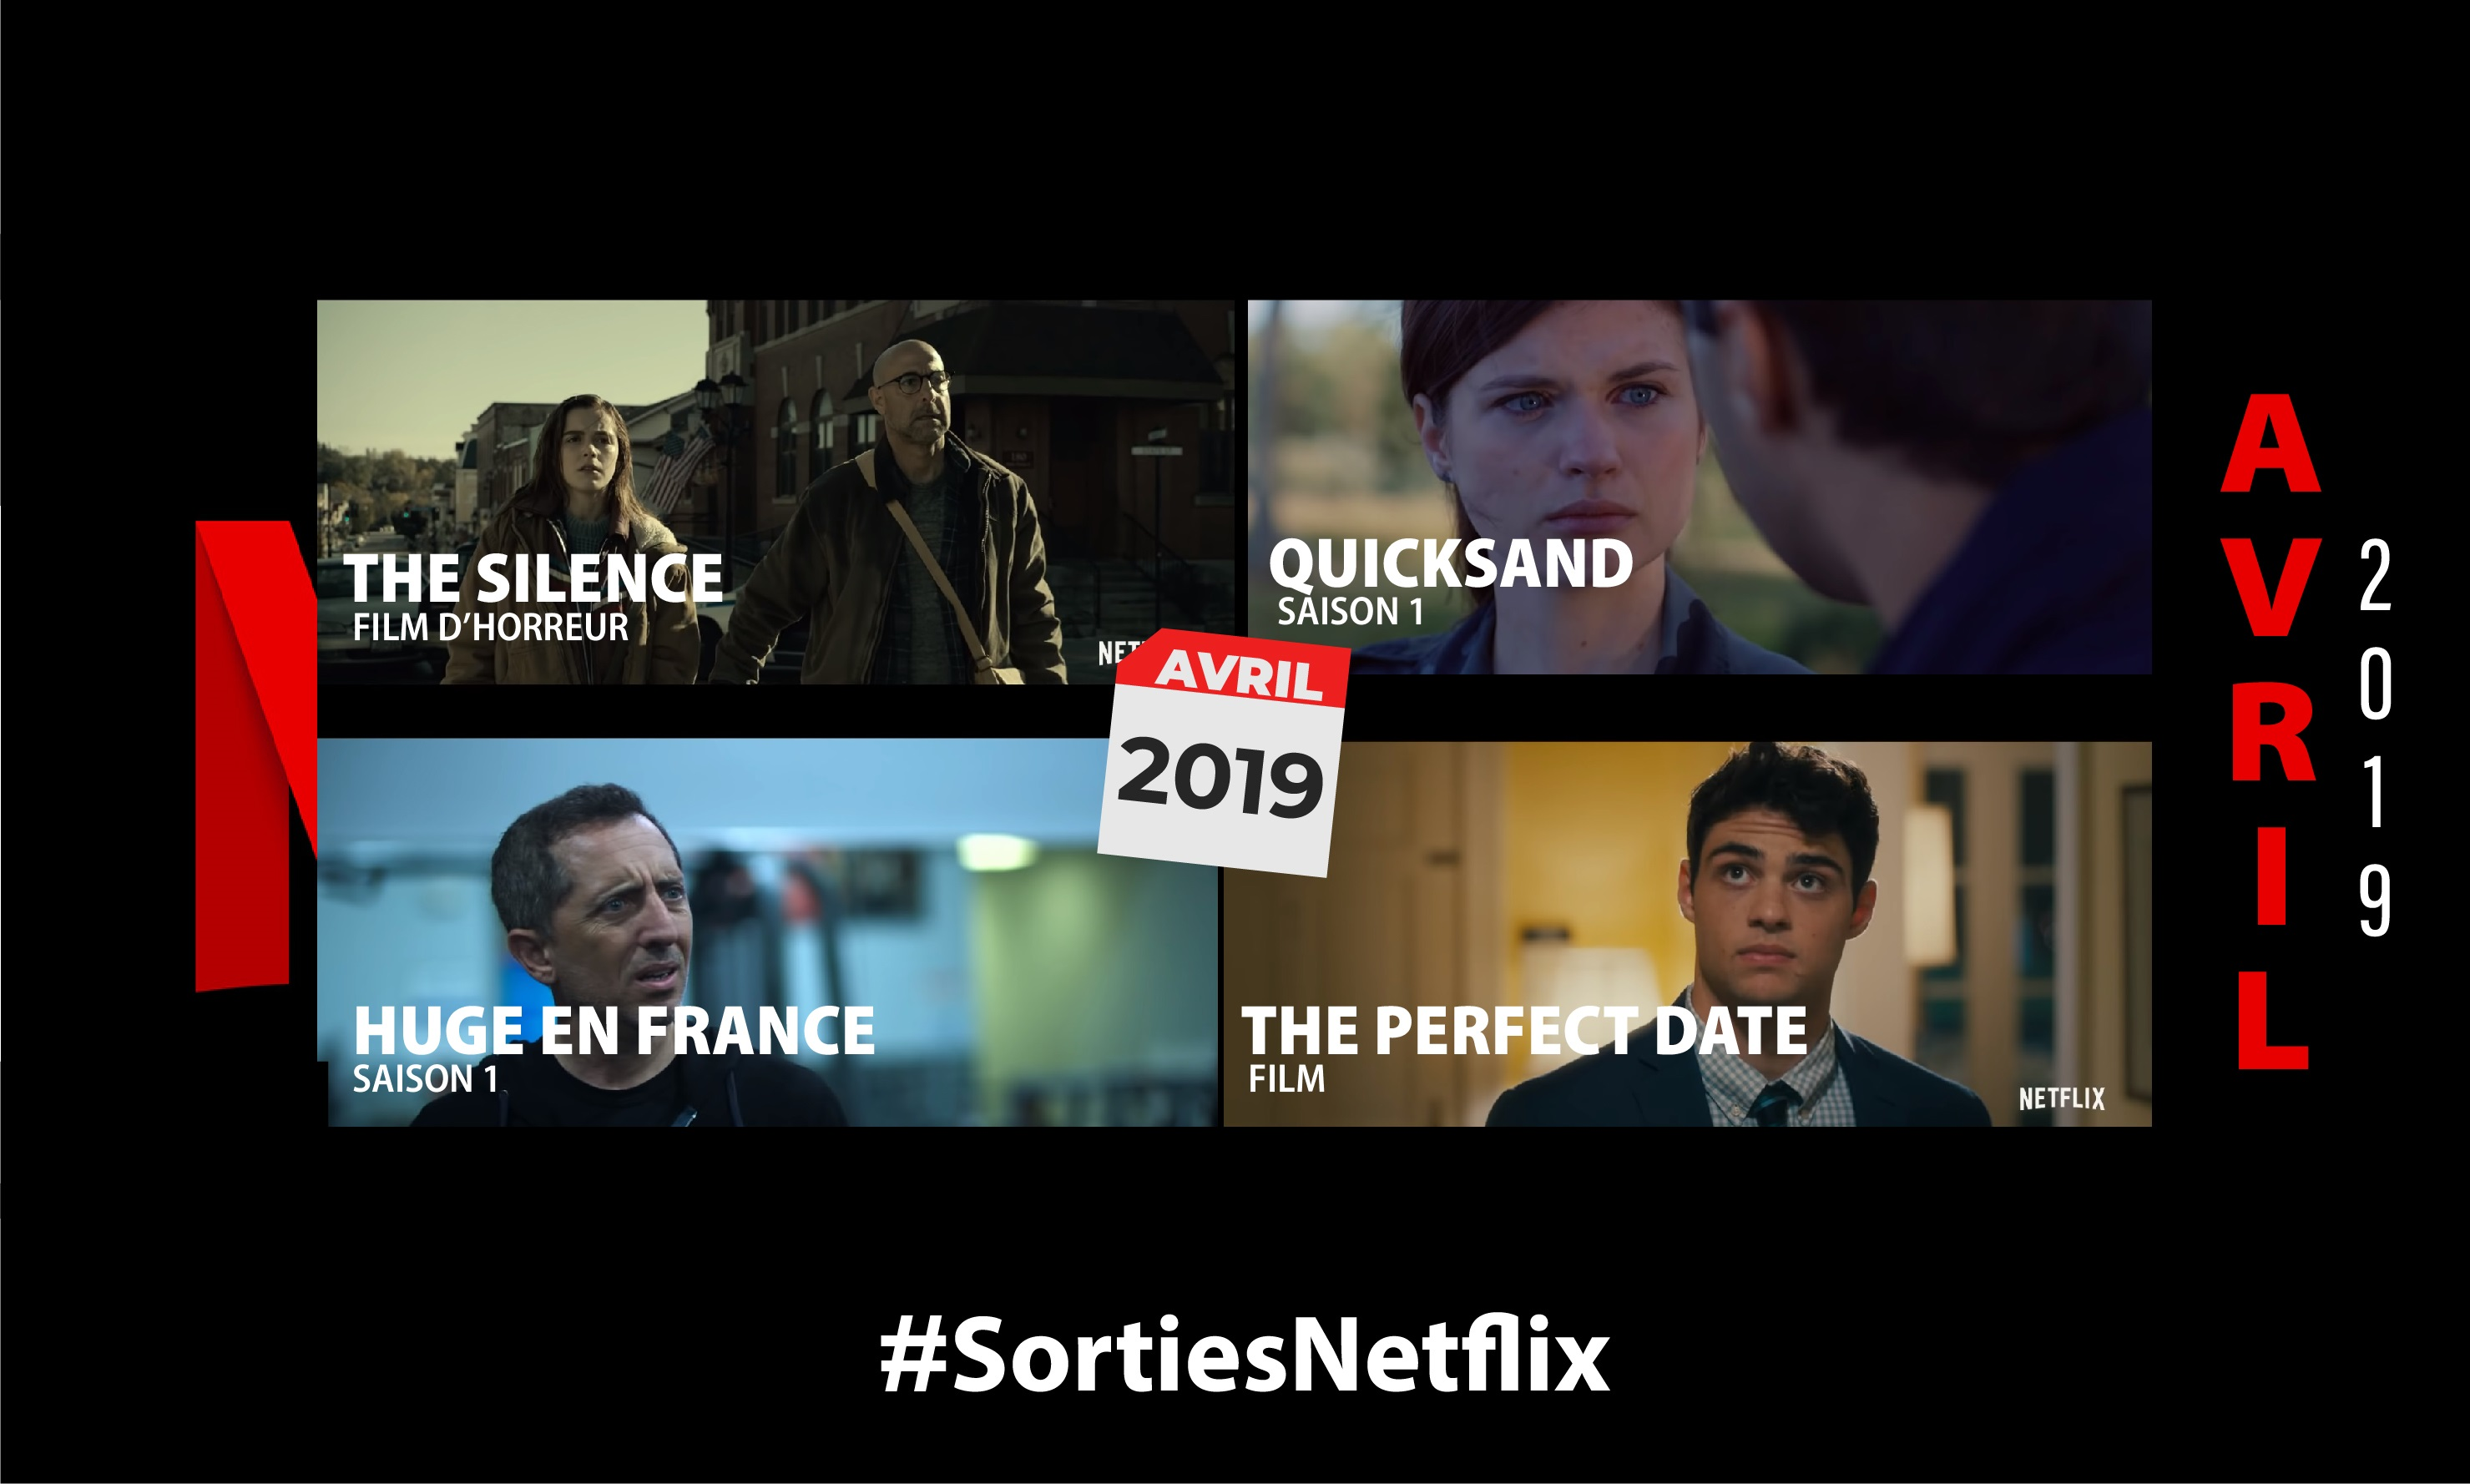 Que regarder sur Netflix en avril 2019 en terme de séries, film, documentaires ? Voici le programme ! Retirer un terme : Netflix NetflixRetirer un terme : séries sériesRetirer un terme : films filmsRetirer un terme : documentaires documentairesRetirer un terme : spectacles spectaclesRetirer un terme : streaming streamingRetirer un terme : nouveautés netflix nouveautés netflixRetirer un terme : series netflix series netflixRetirer un terme : Les nouvelles aventures de Sabrina Les nouvelles aventures de SabrinaRetirer un terme : Huge en France Huge en FranceRetirer un terme : Lucifer LuciferRetirer un terme : Chambers ChambersRetirer un terme : Tom Ellis Tom EllisRetirer un terme : The Perfect Date The Perfect Date